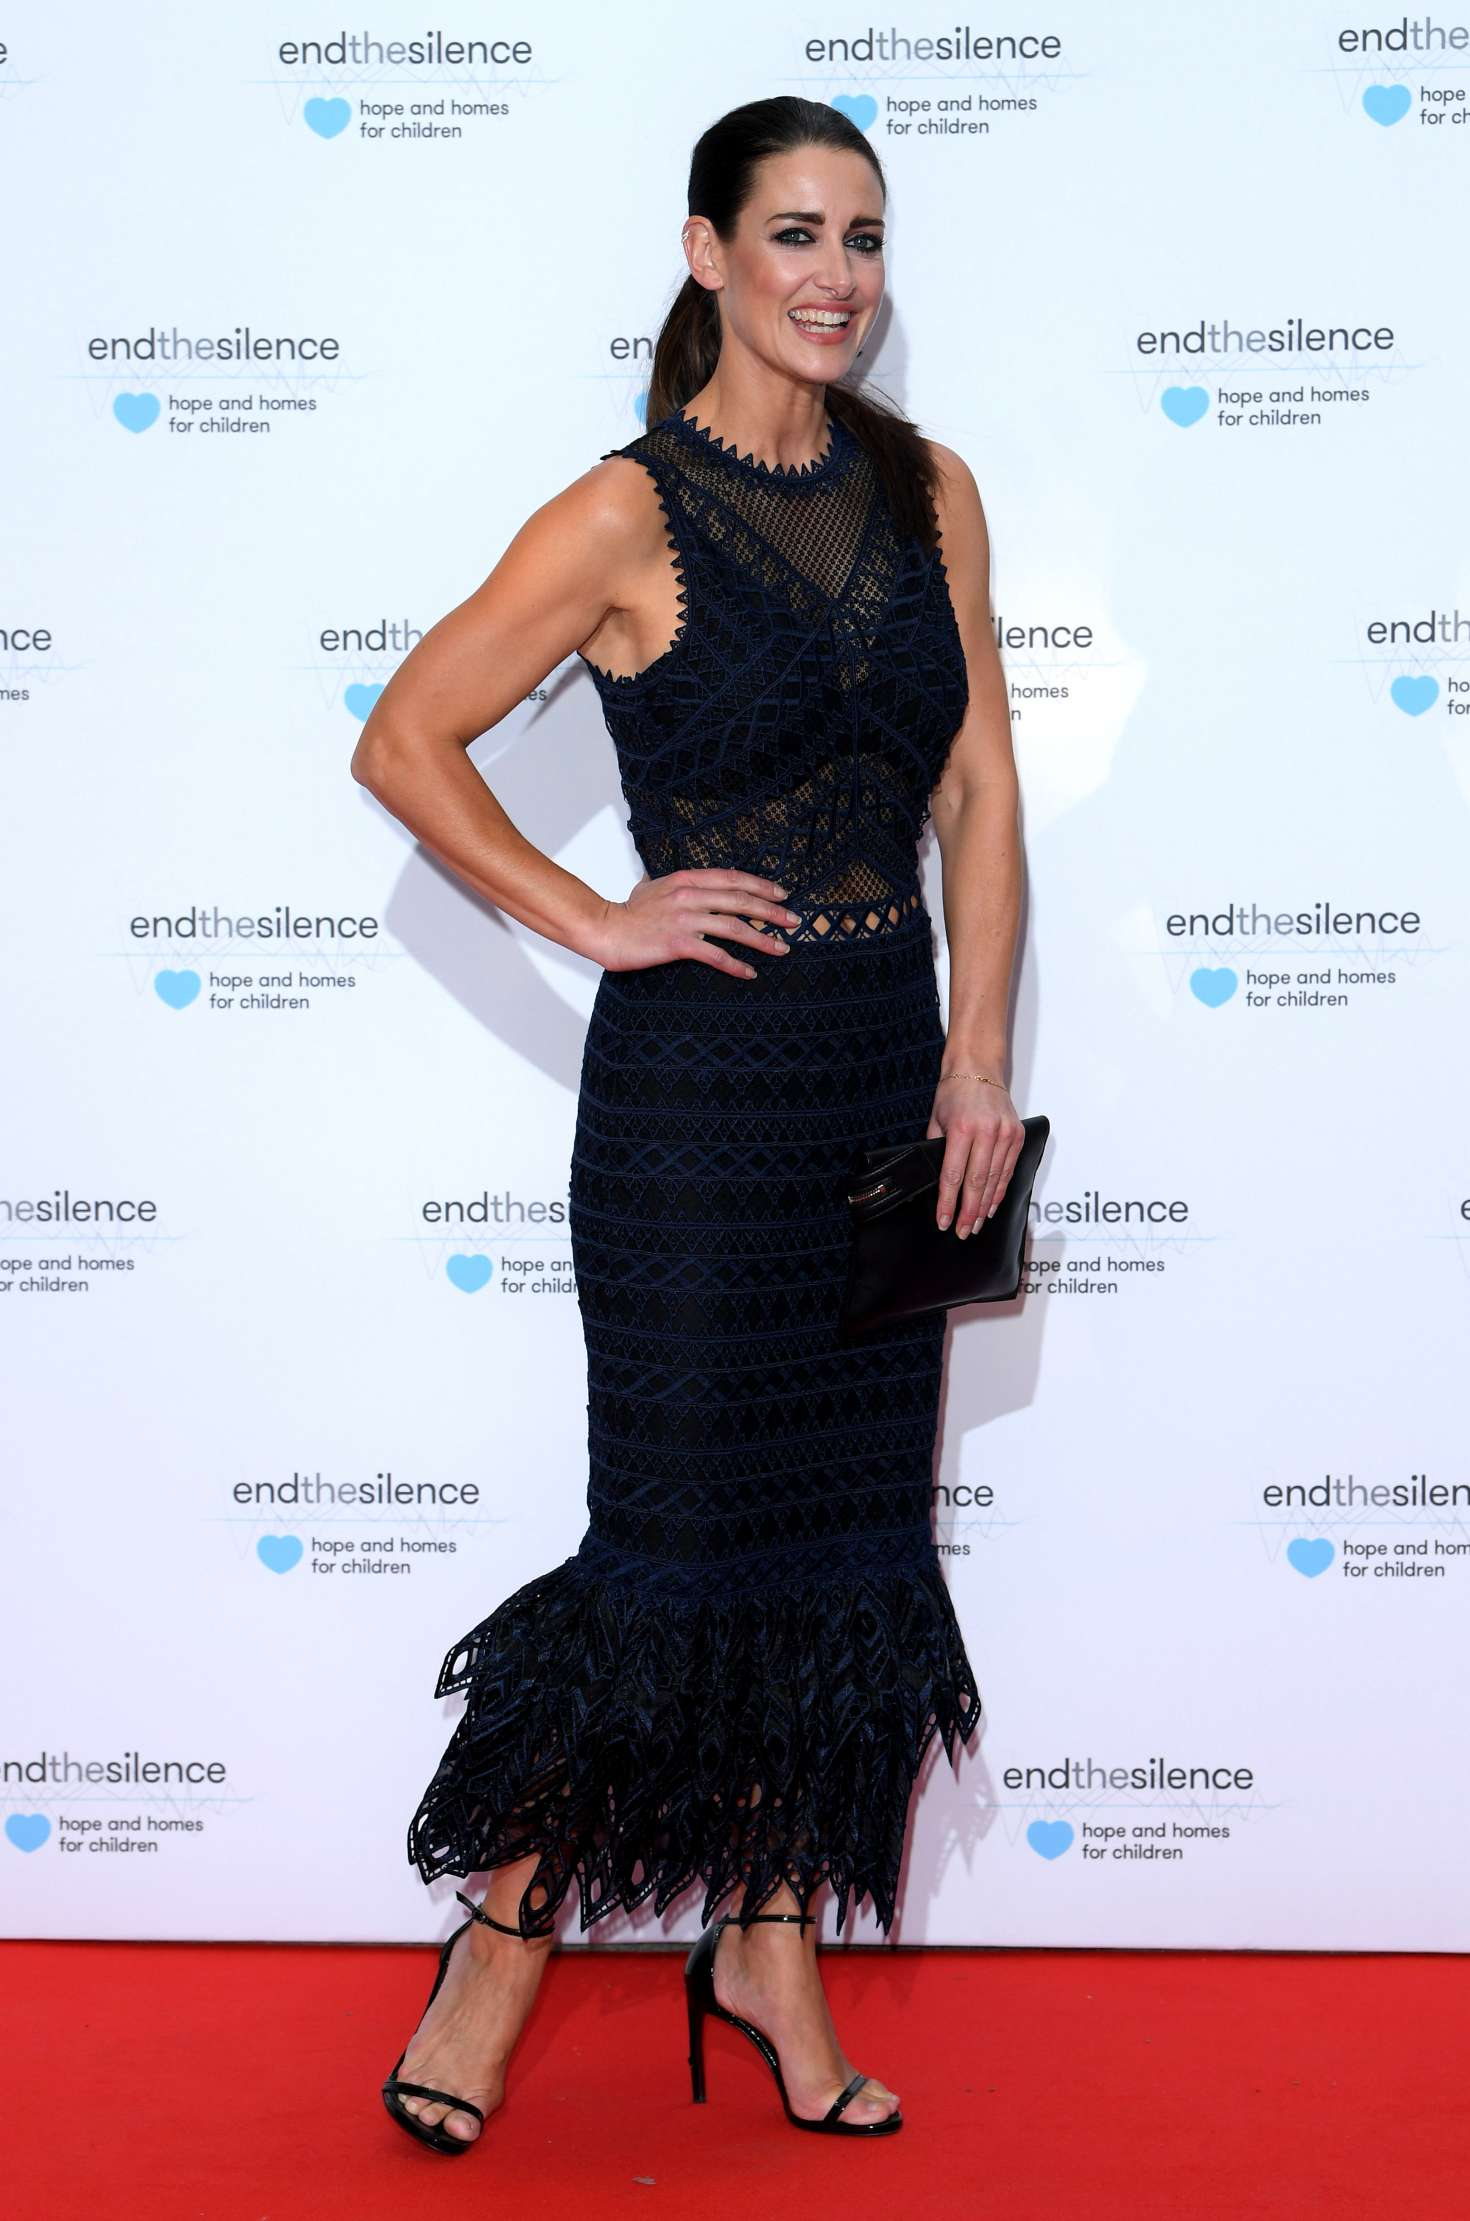 Kirsty Gallacher 2017 : Kirsty Gallacher: End the Silence Charity Fundraiser -01